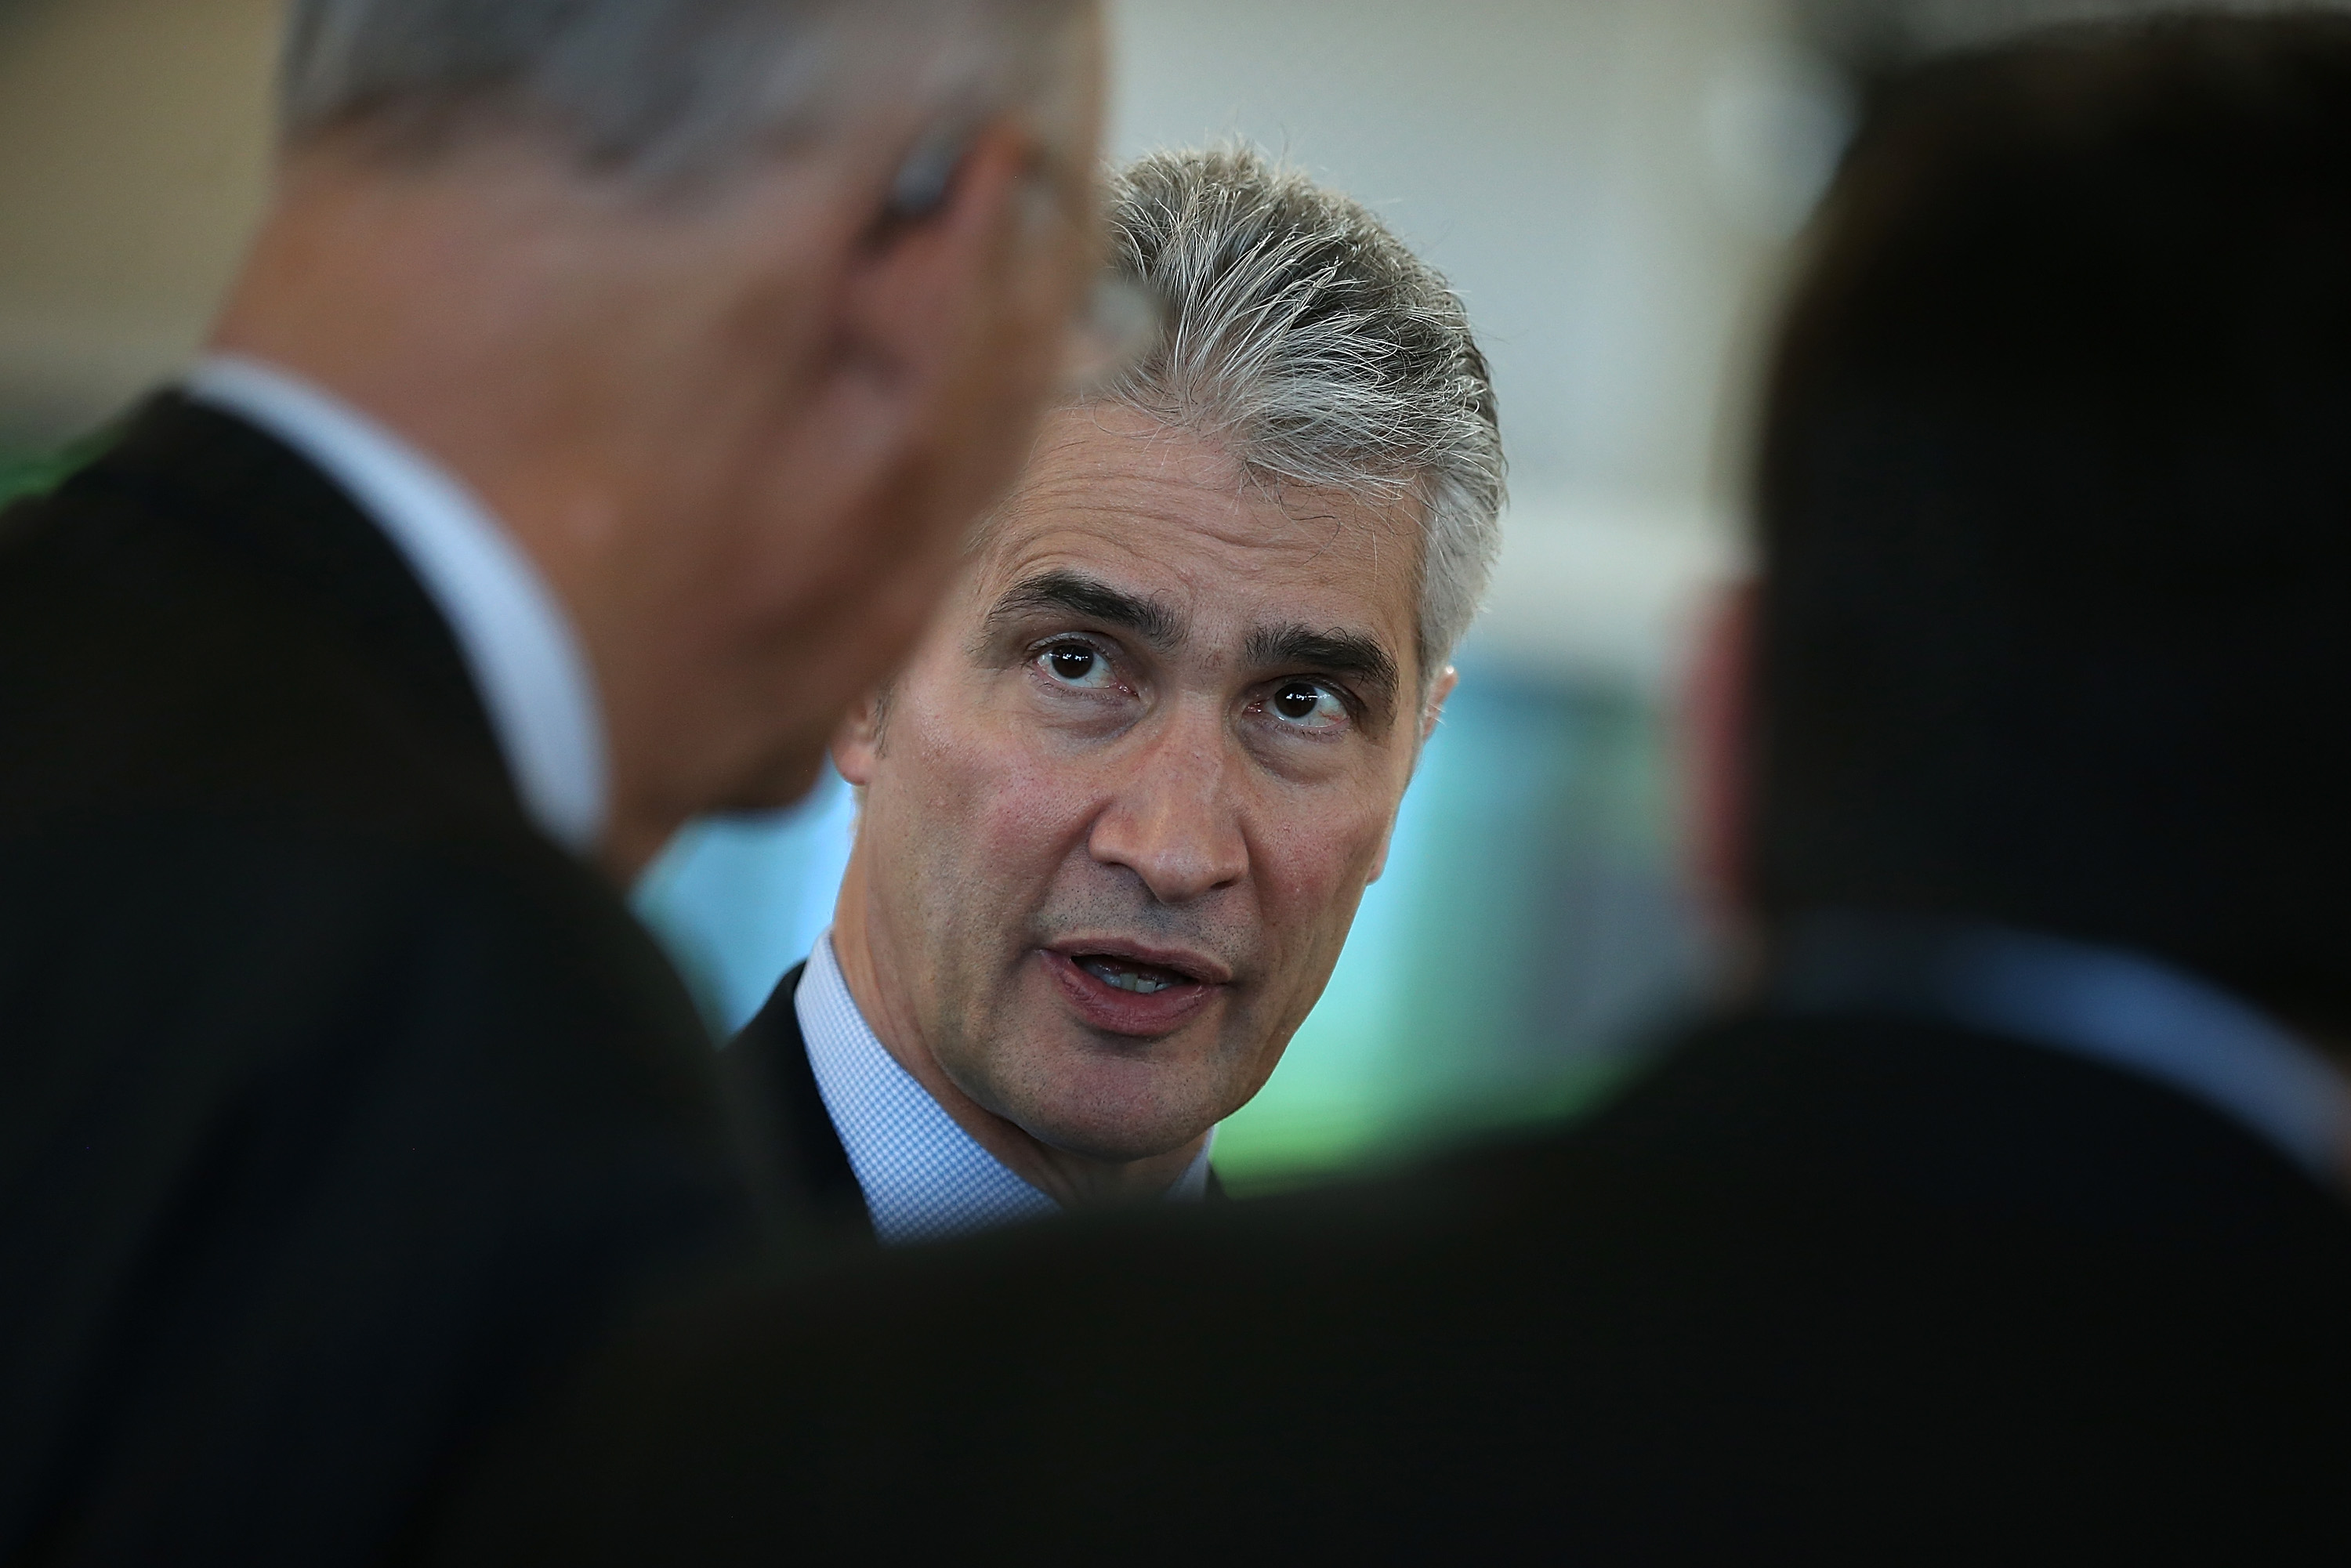 United Airlines Chairman, President and CEO Jeff Smisek talks with attendees before a news conference to announce the opening of a new United terminal at San Francisco International Airport on January 24, 2014 in San Francisco, California.